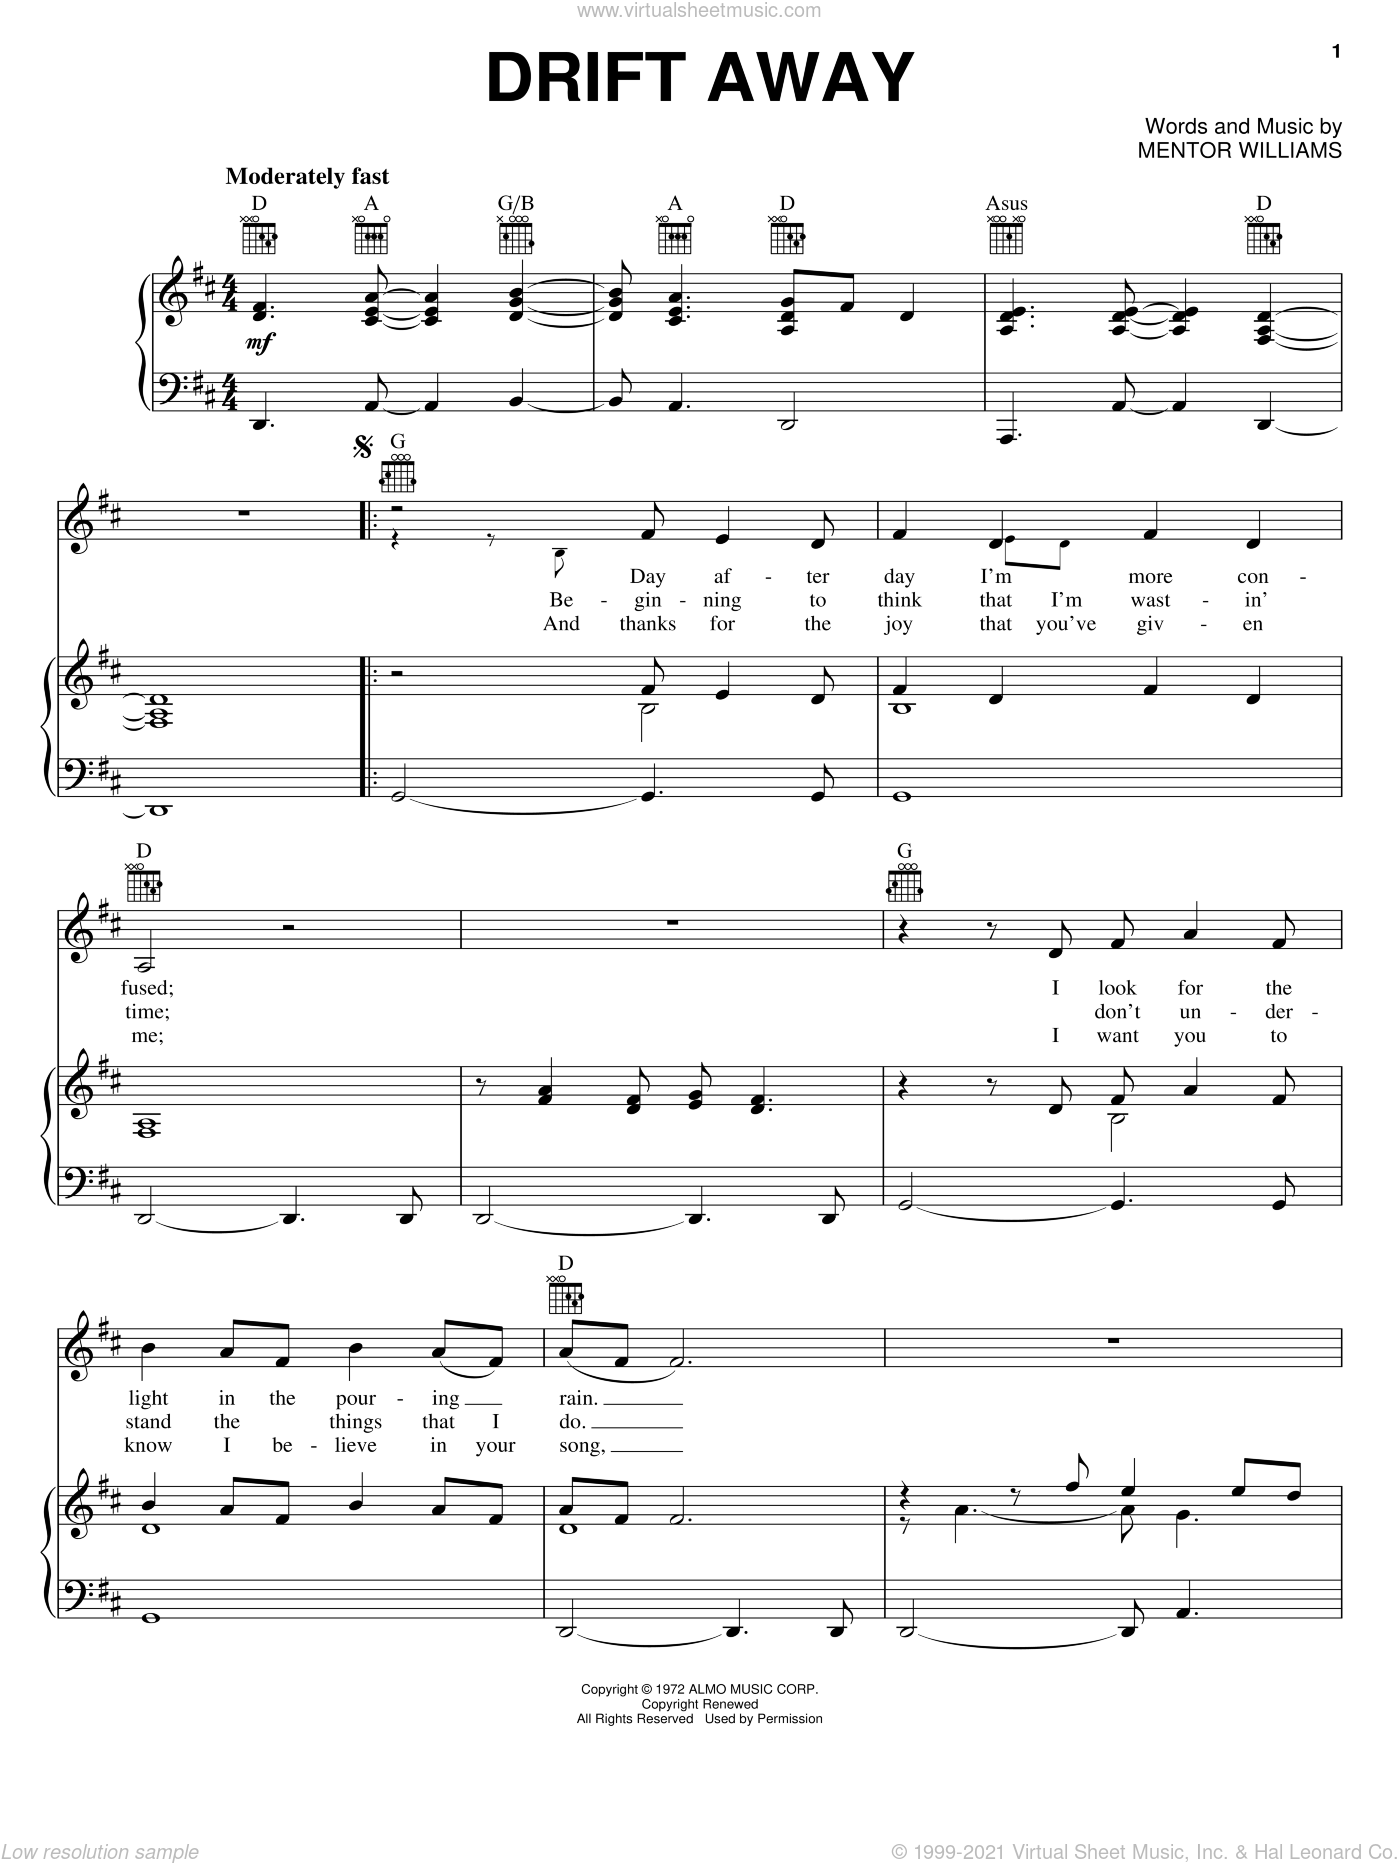 Drift Away sheet music for voice, piano or guitar by Mentor Williams